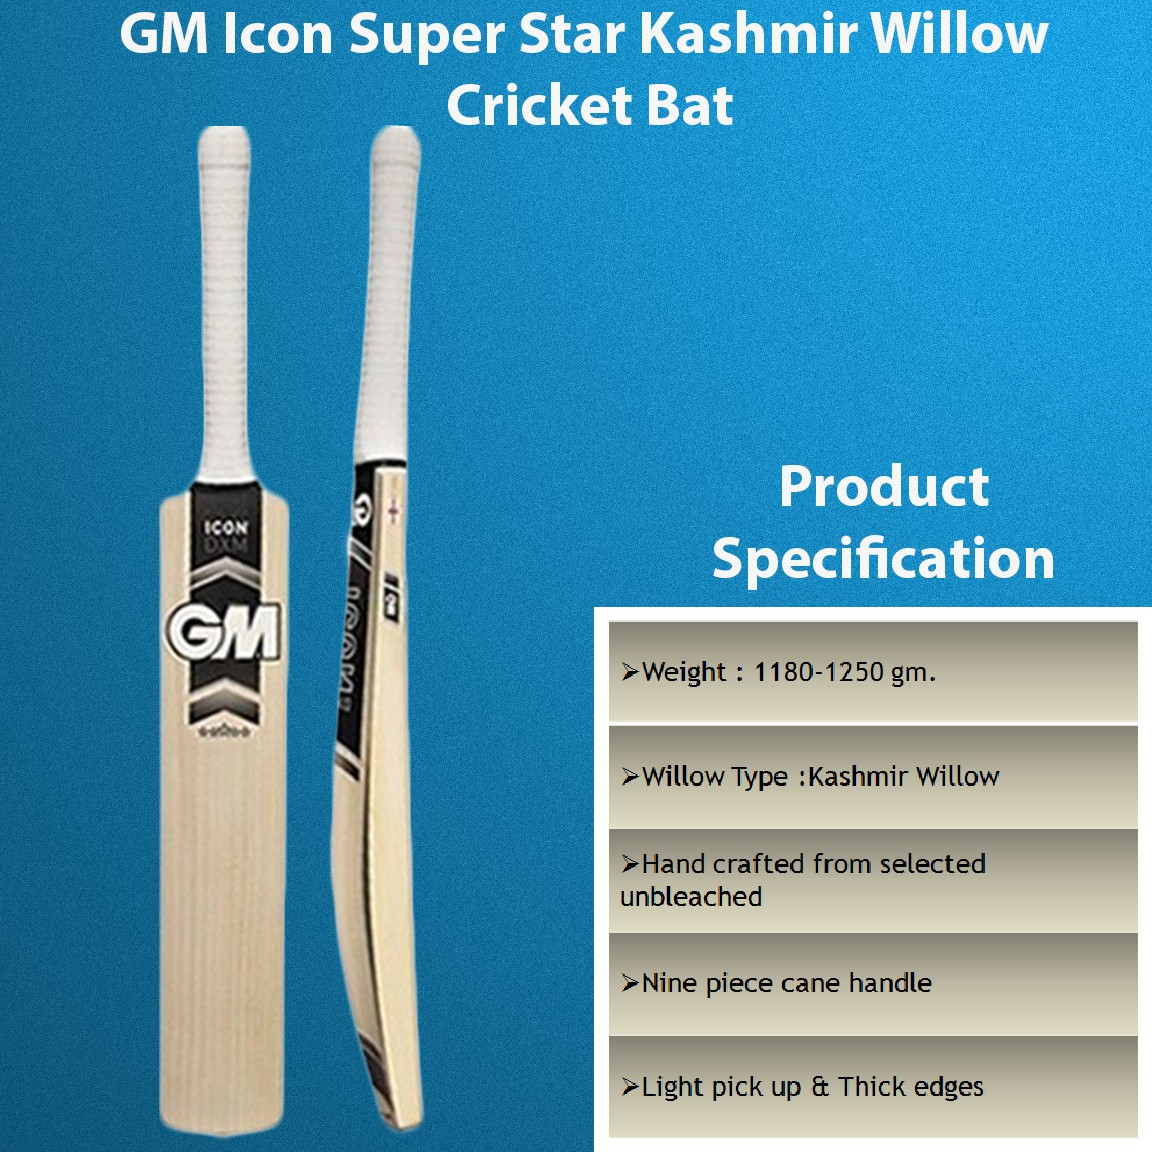 GM Icon Super Star Kashmir Willow Cricket Bat